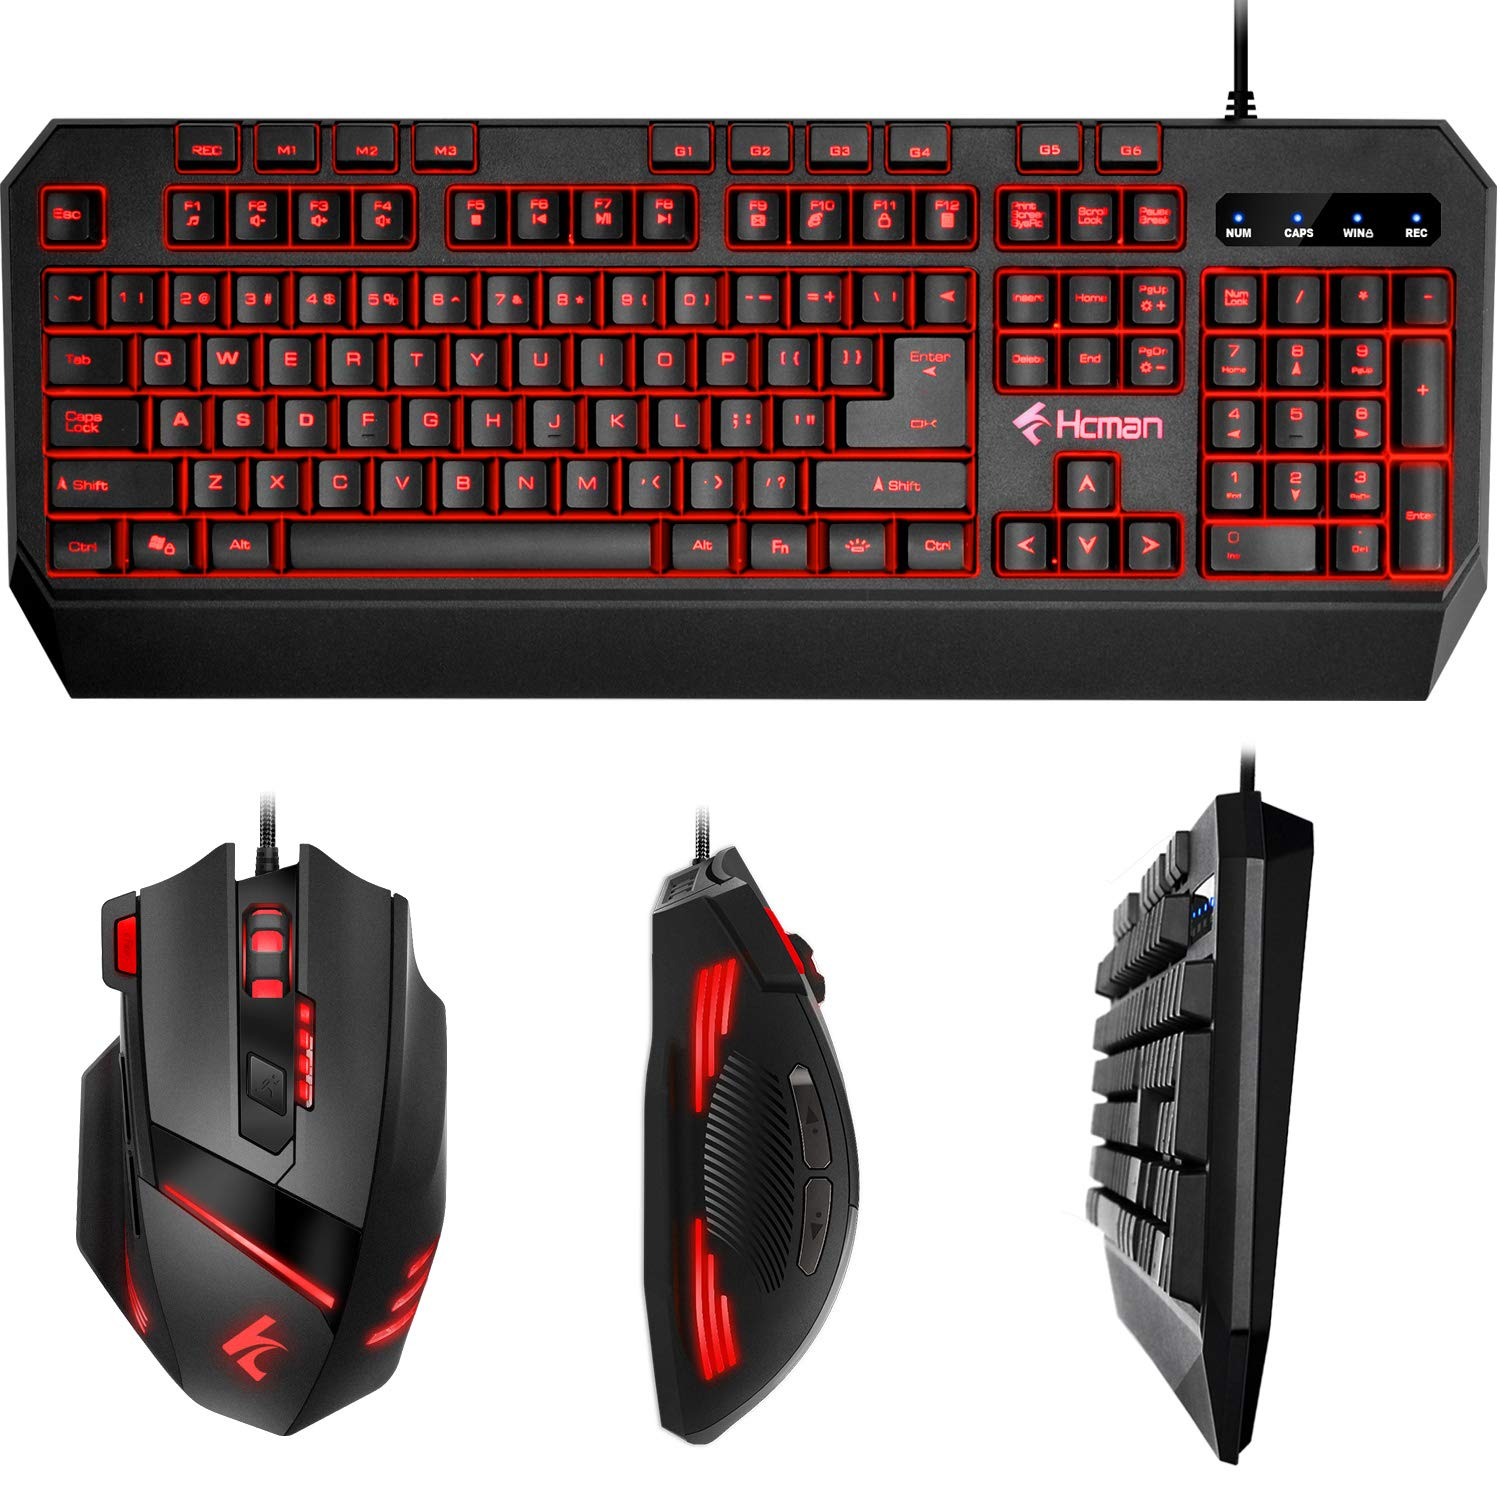 Gaming Keyboard Mouse LED Combo - Hcman 18 Different Macro Keys,Backlit Wired Membrane Keyboard & Programmable 7 Buttons & 5 DPI Mode USB Gaming Mouse, Support Macro Editor, for PC MAC Computer Gamers by Hcman